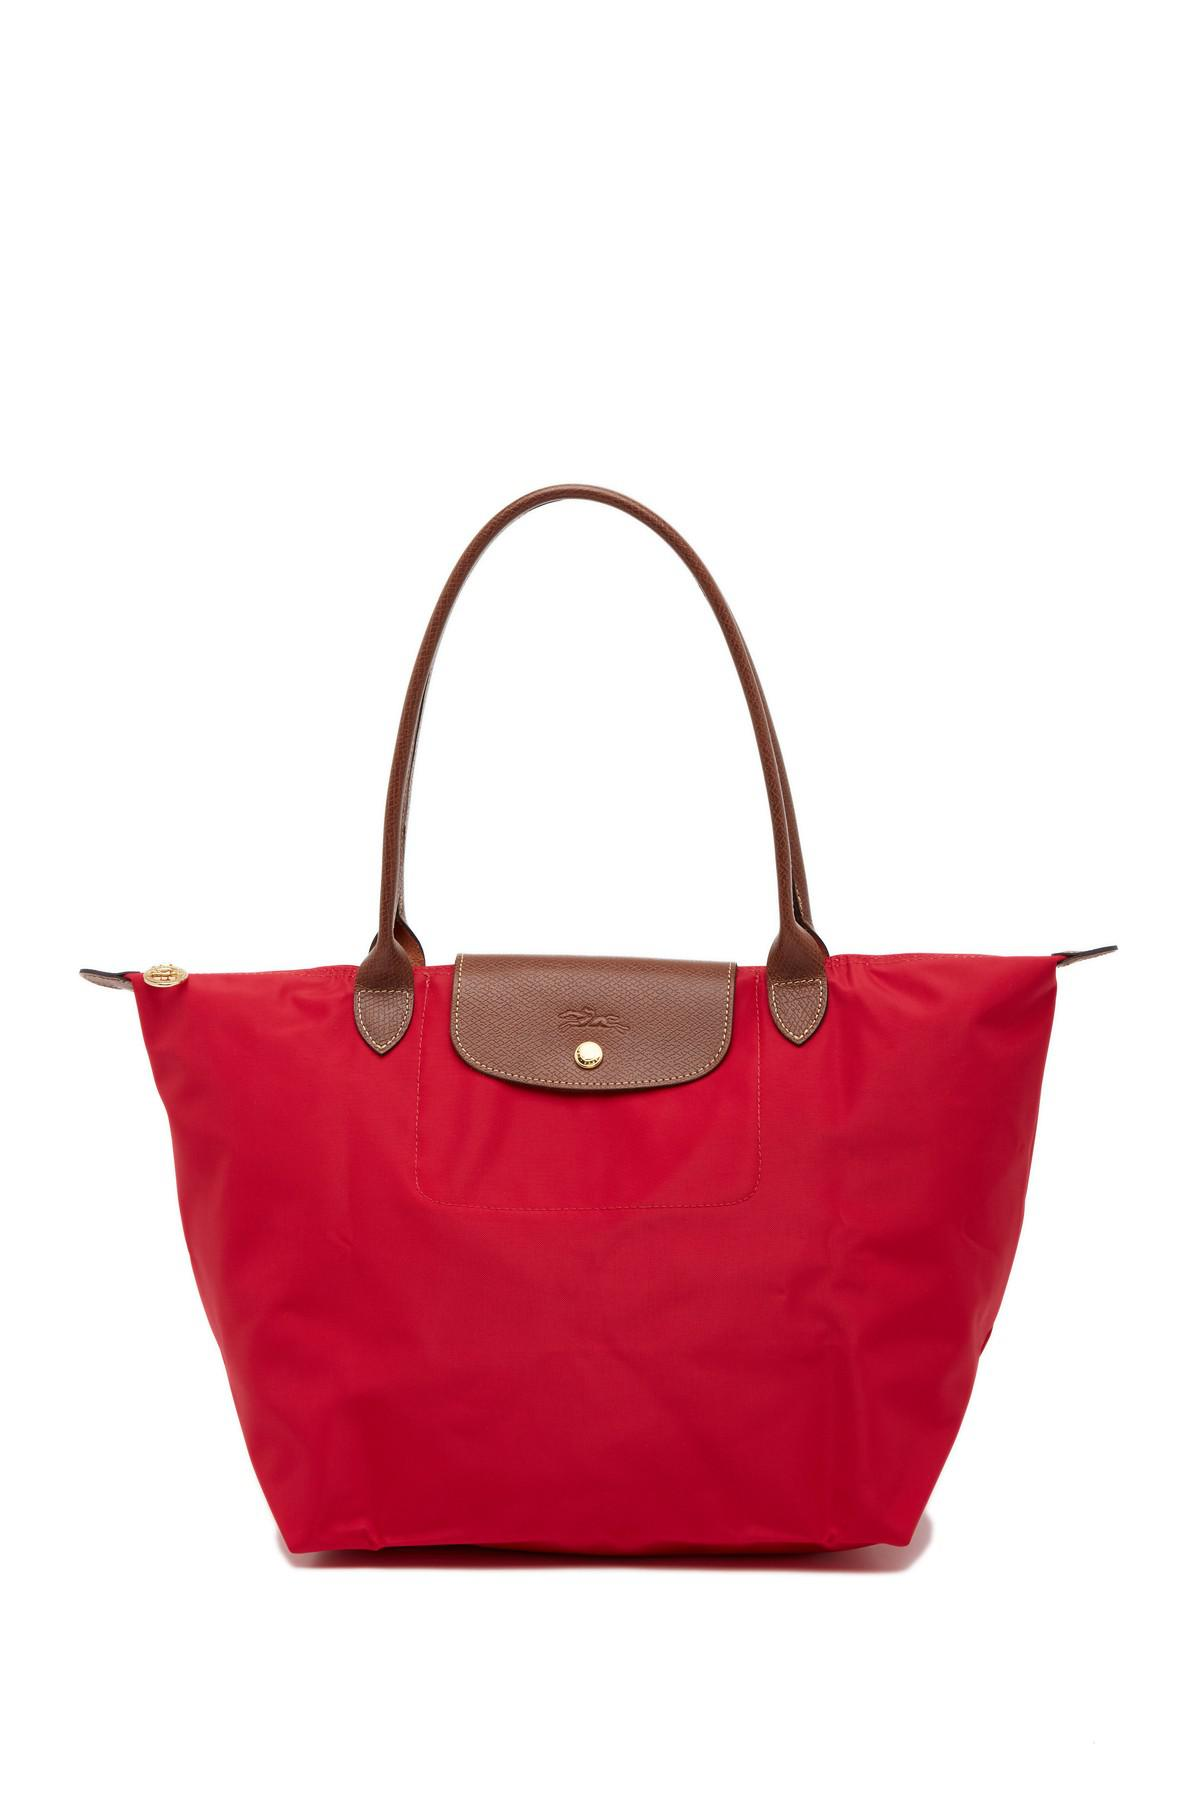 Lyst - Longchamp Le Pl Lg Shldr Tote in Red - Save 10.112359550561791% 7eafed8bc6